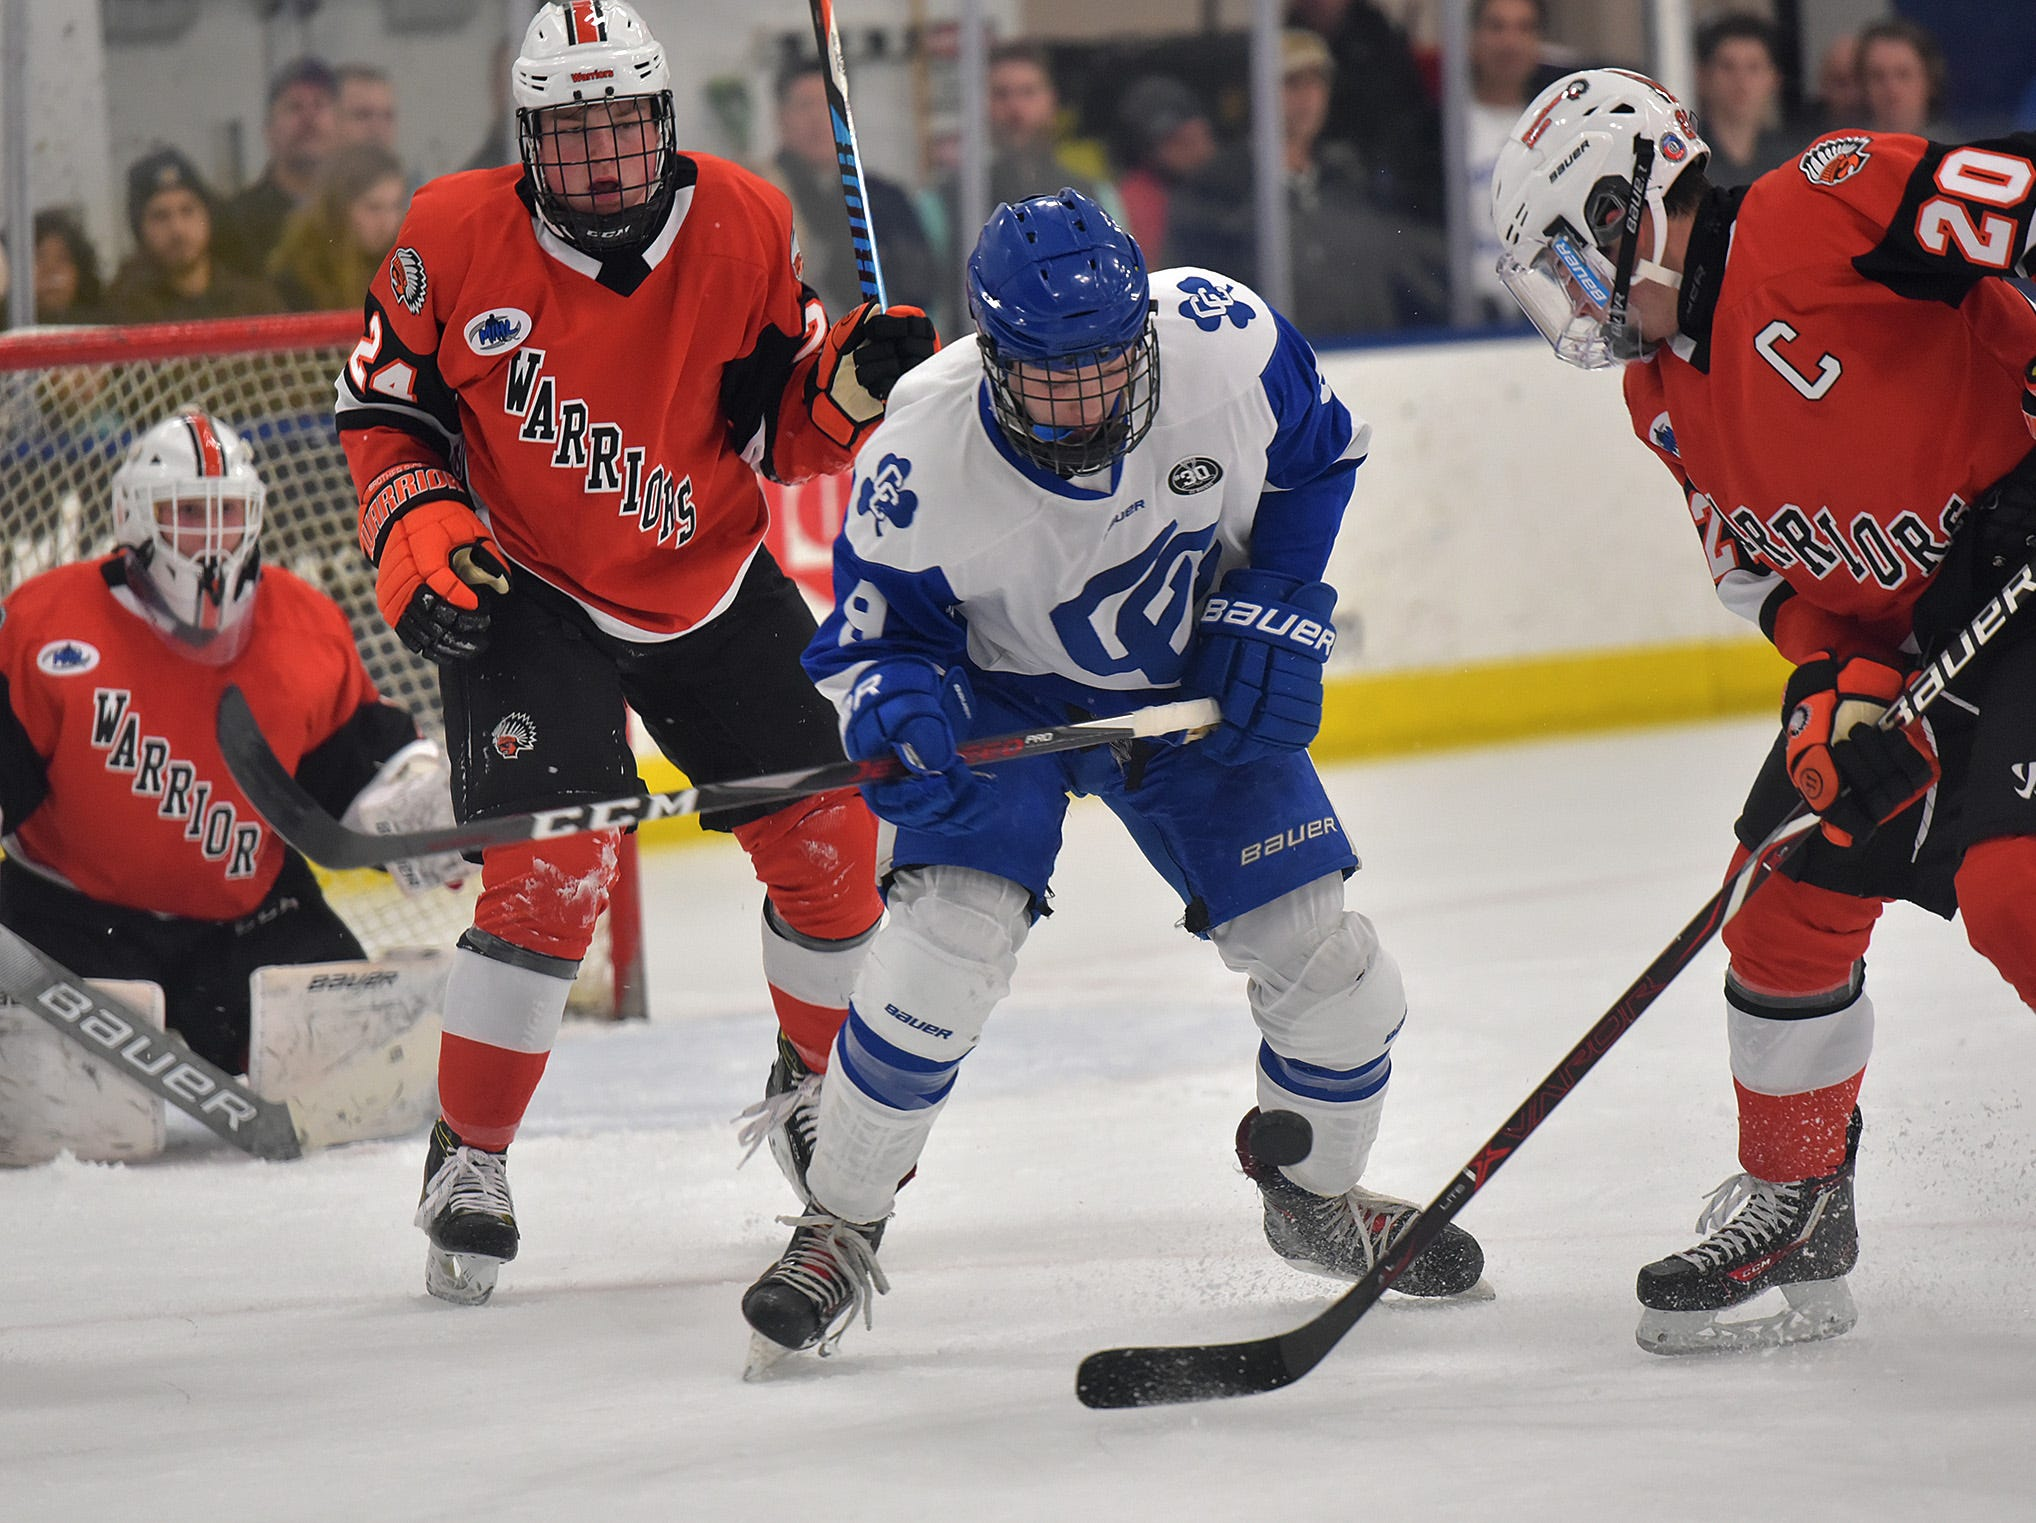 CC's forward Blake Salamon (9) and Rice defense Chris Andoni (20) battle for the puck in front of the Rice net.